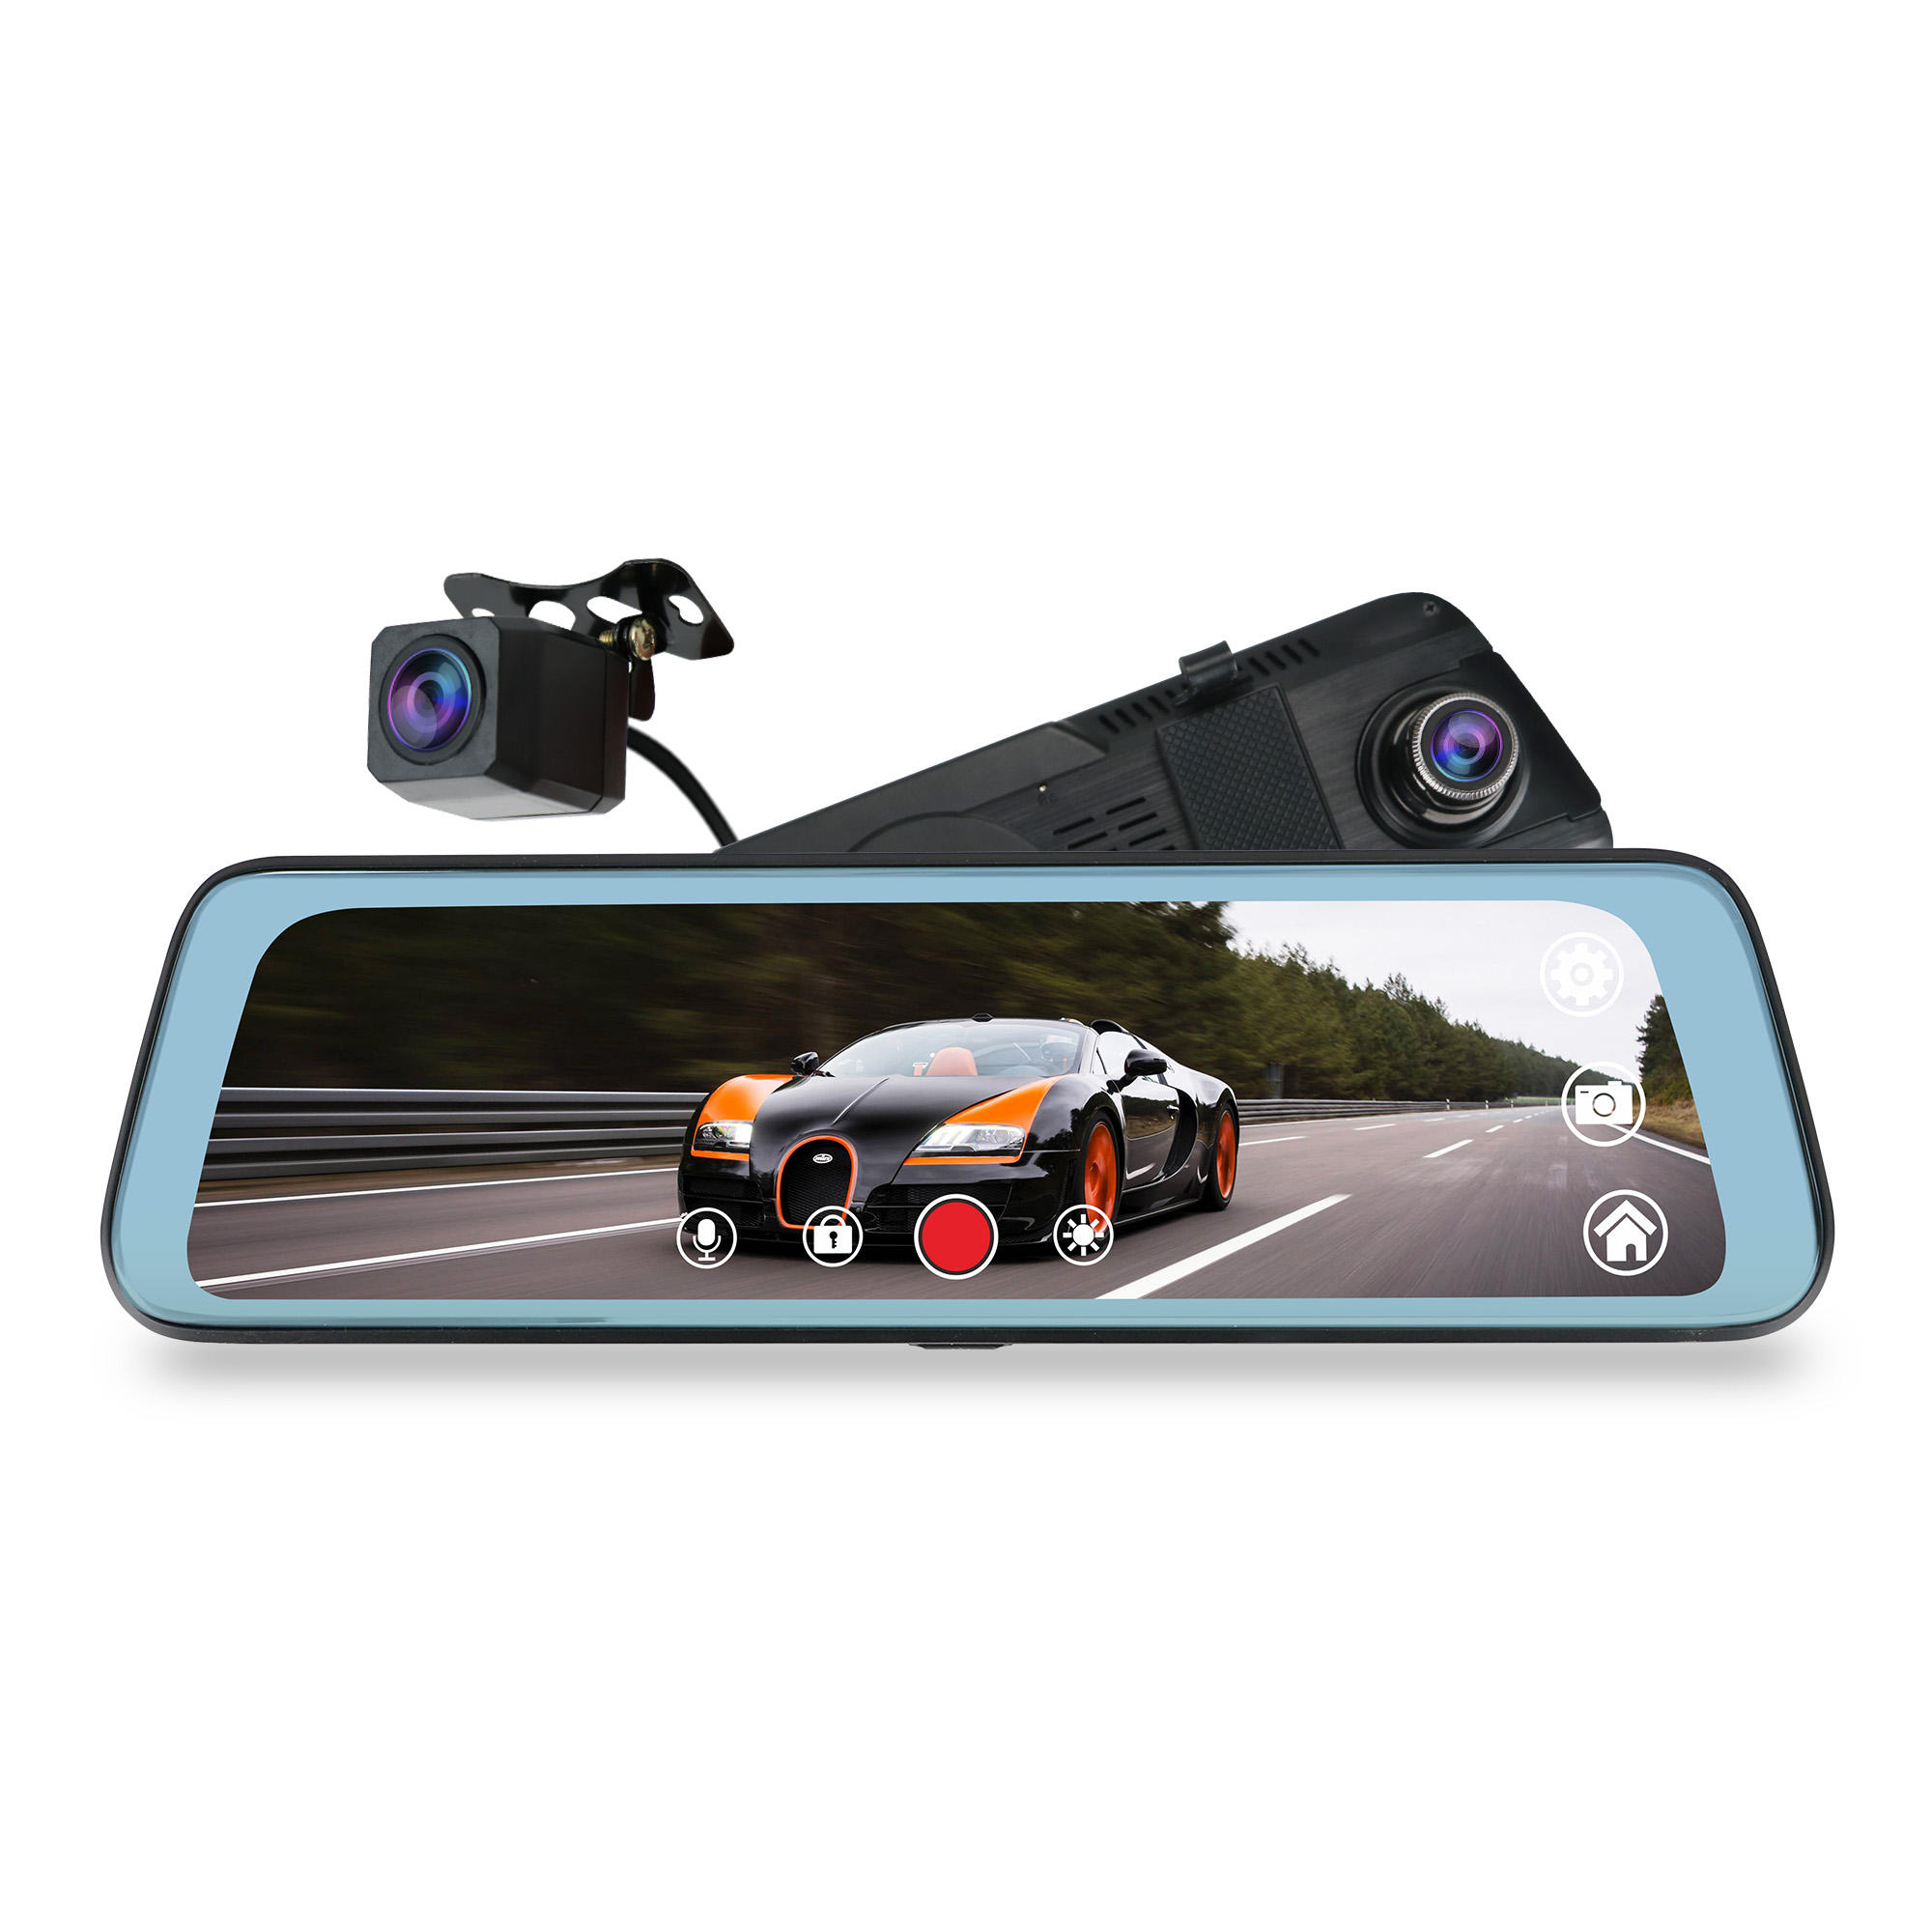 "J66 9.66"" dual full hd 1080p dash camera dual record Stream Media Mirror full screen display mirror camera"